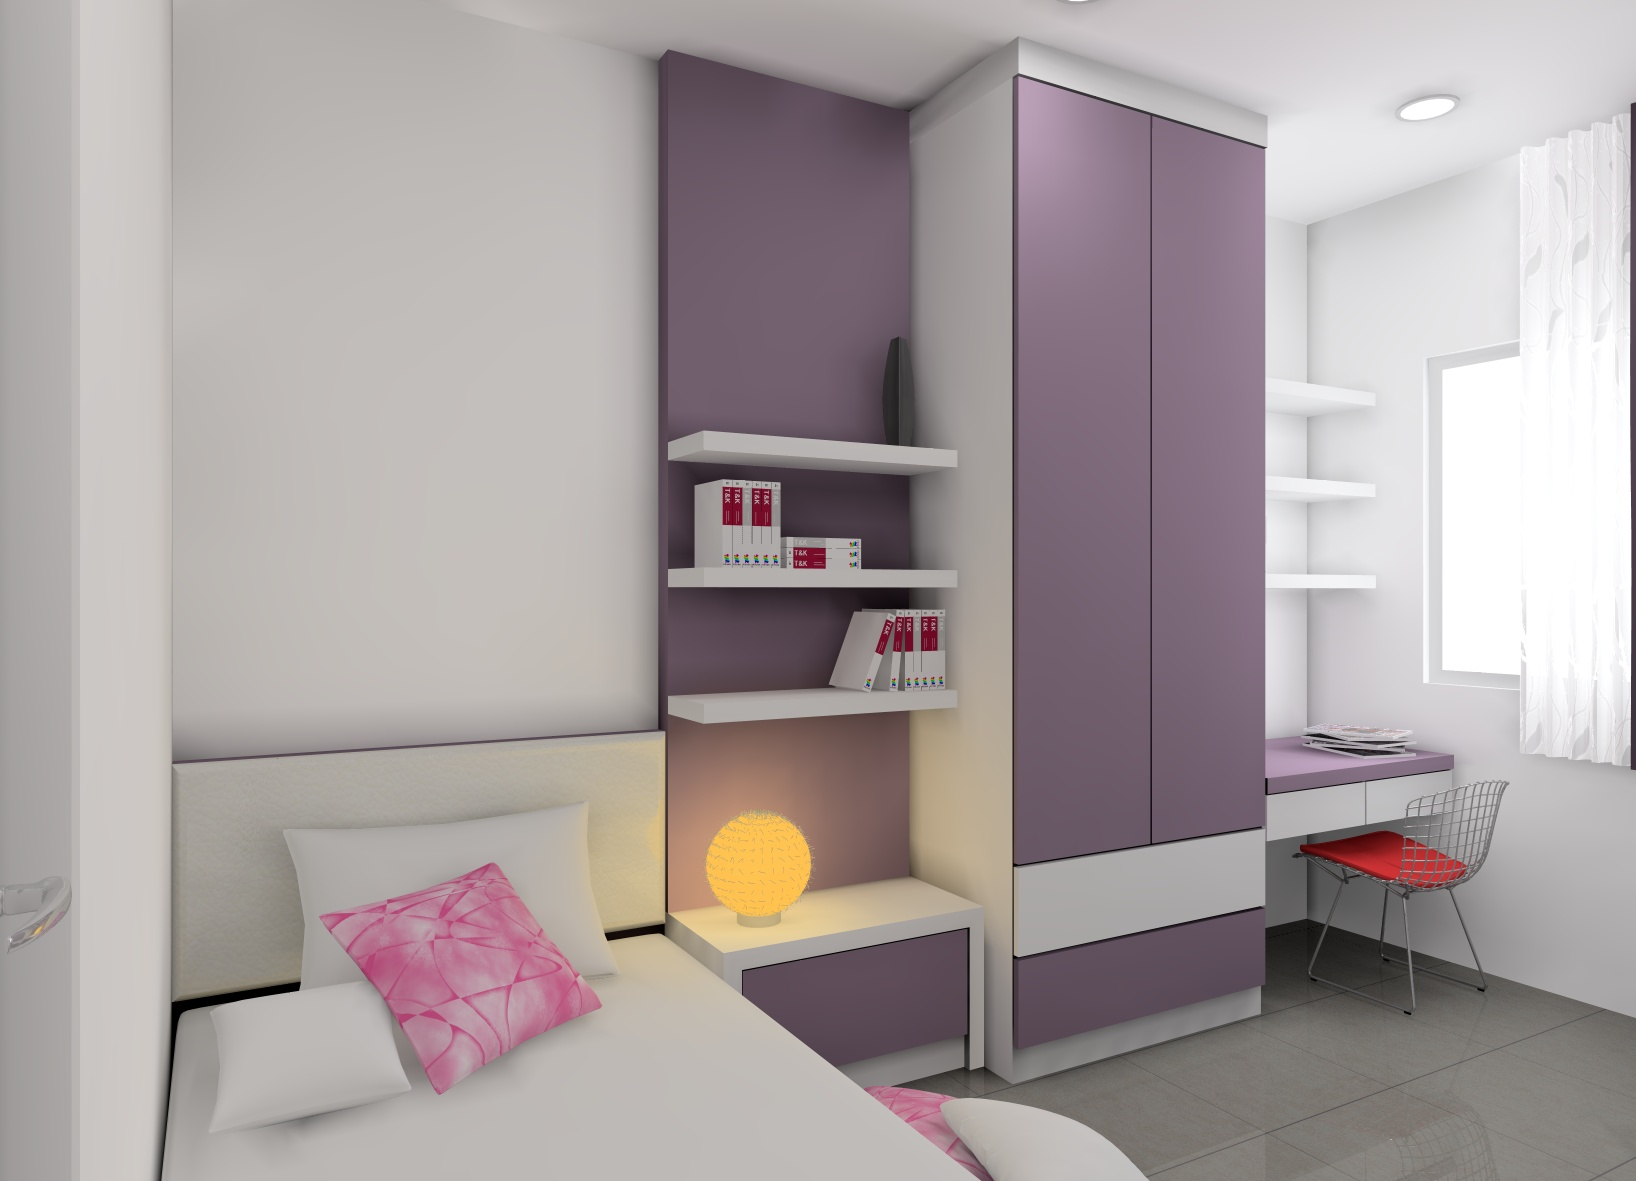 bedroom interior design interior design malaysia l expert interior